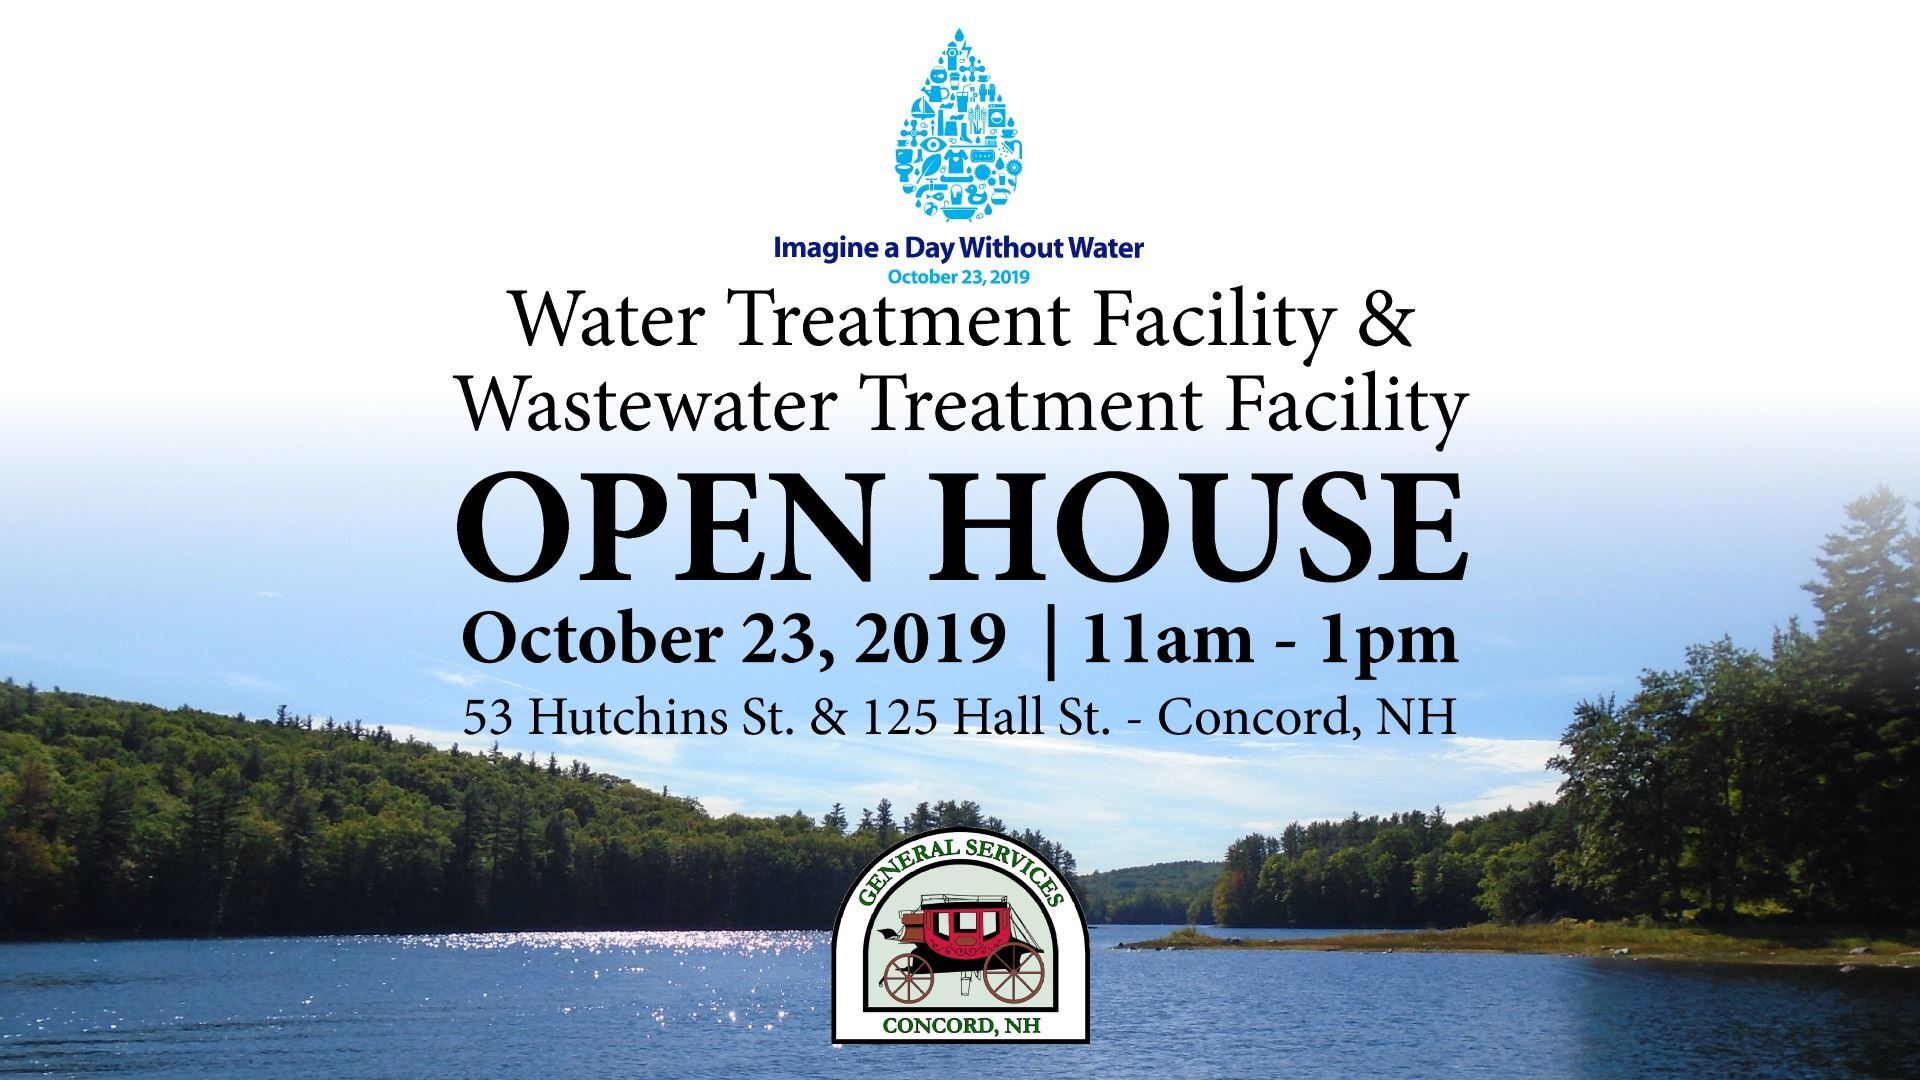 2019 Imagine A Day Without Water Open House